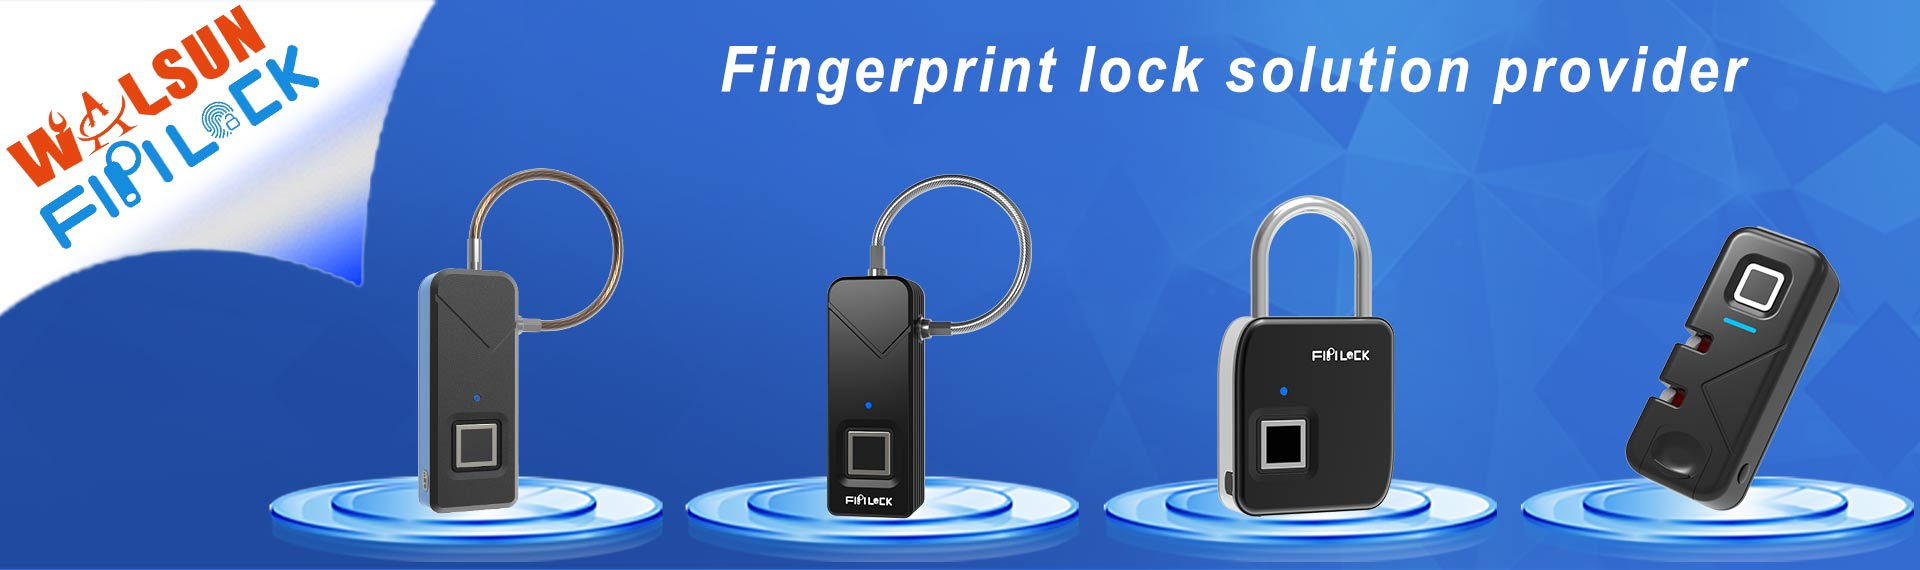 fingerprint lock provider